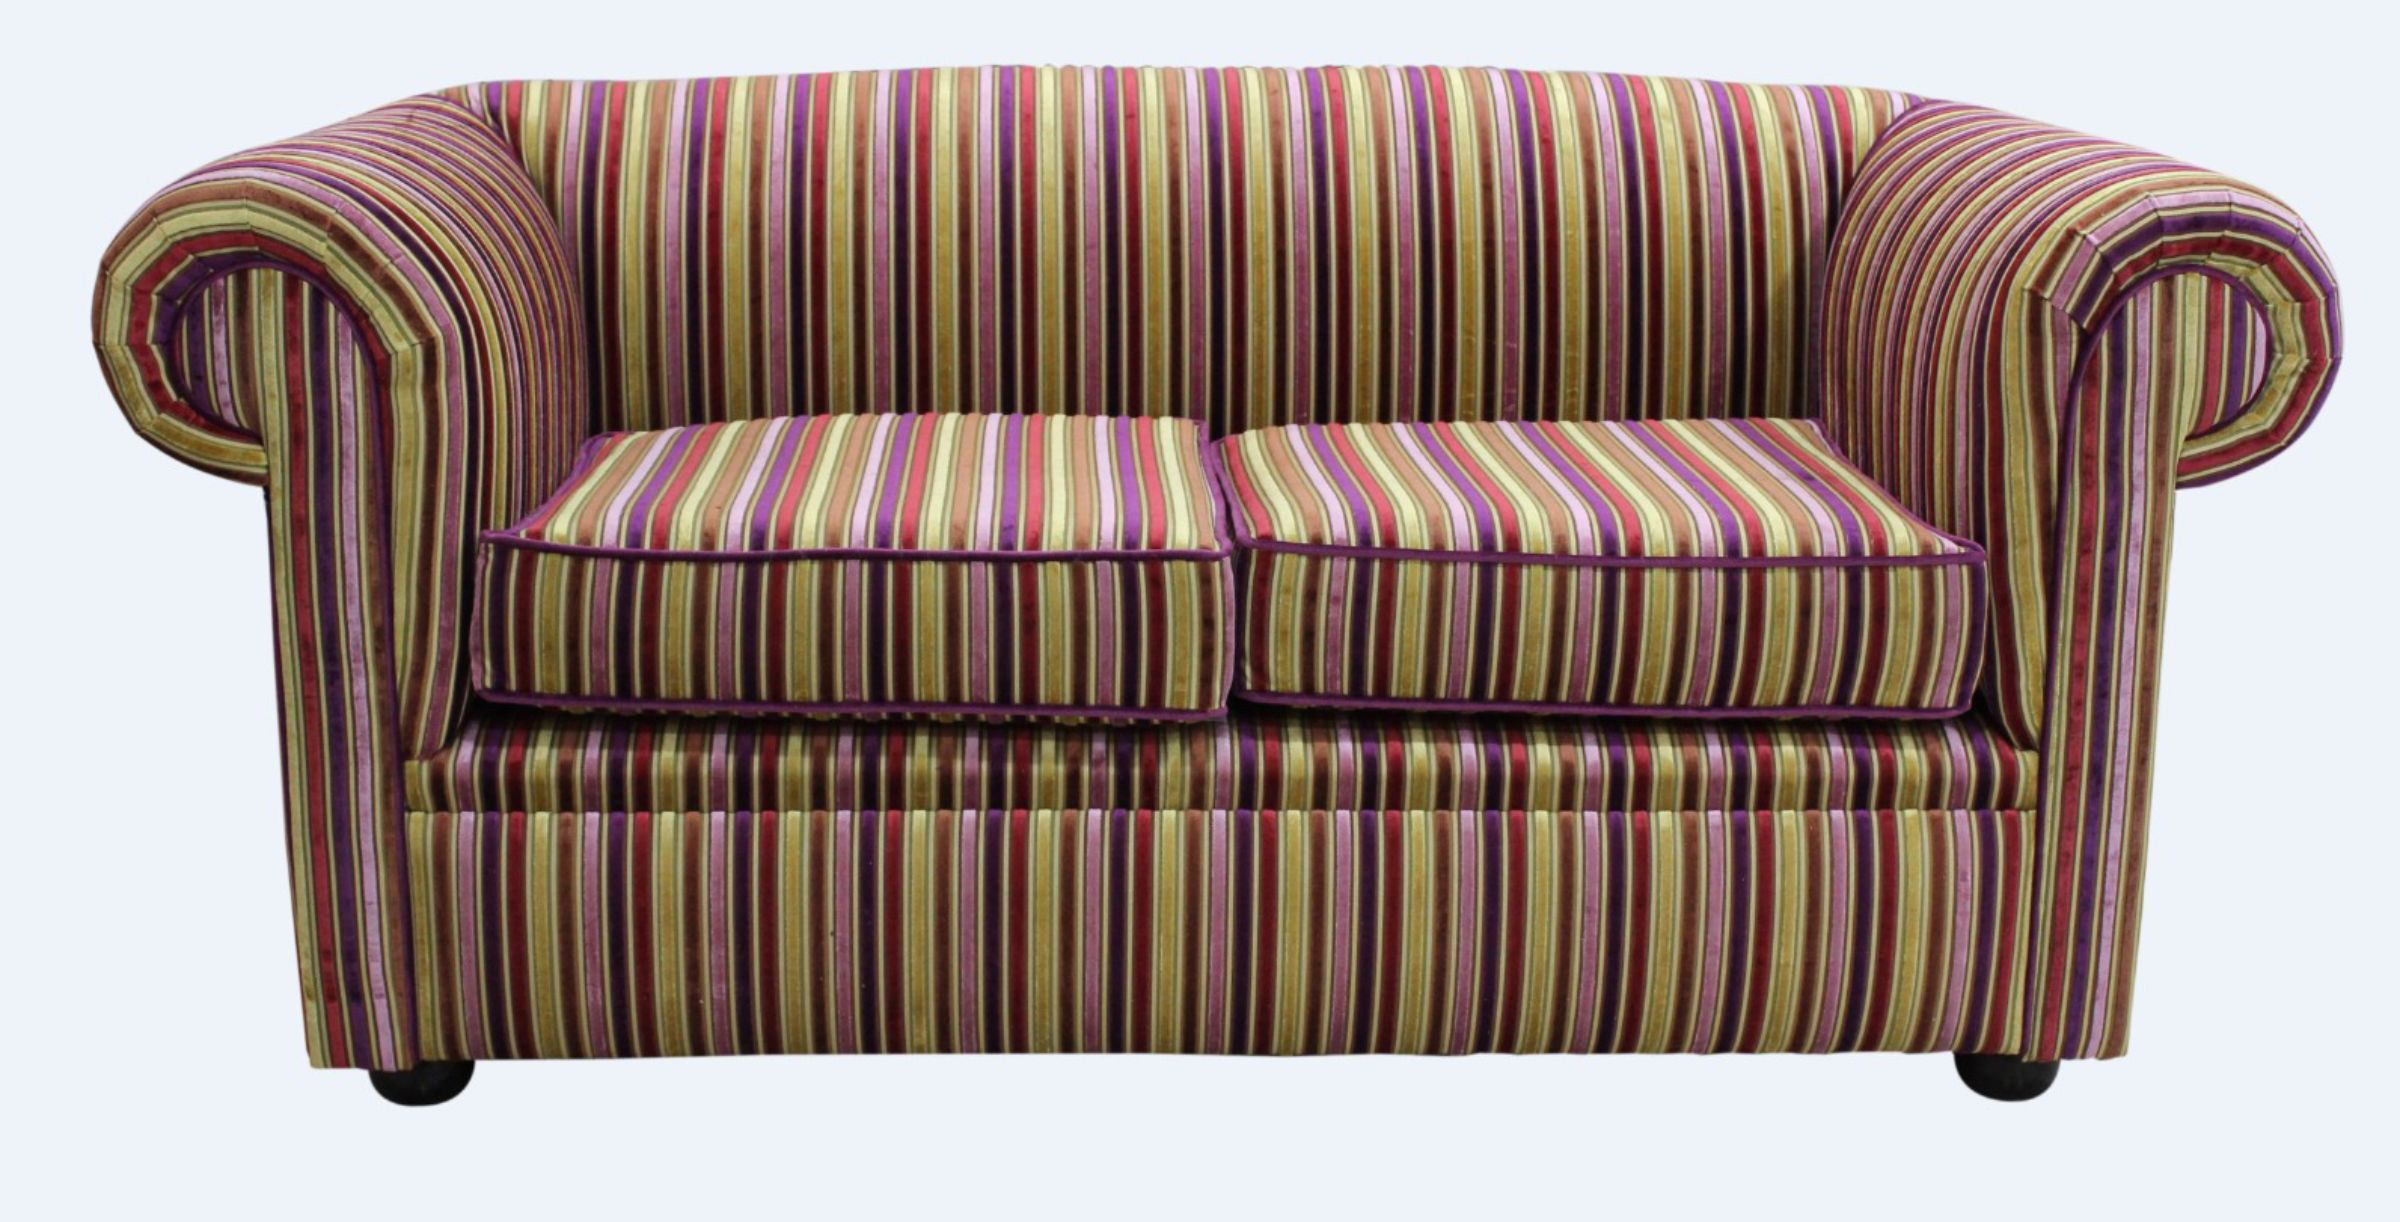 Buy A Chesterfield Sofa Reception Chesterfield Sofas Buy Striped Velvet